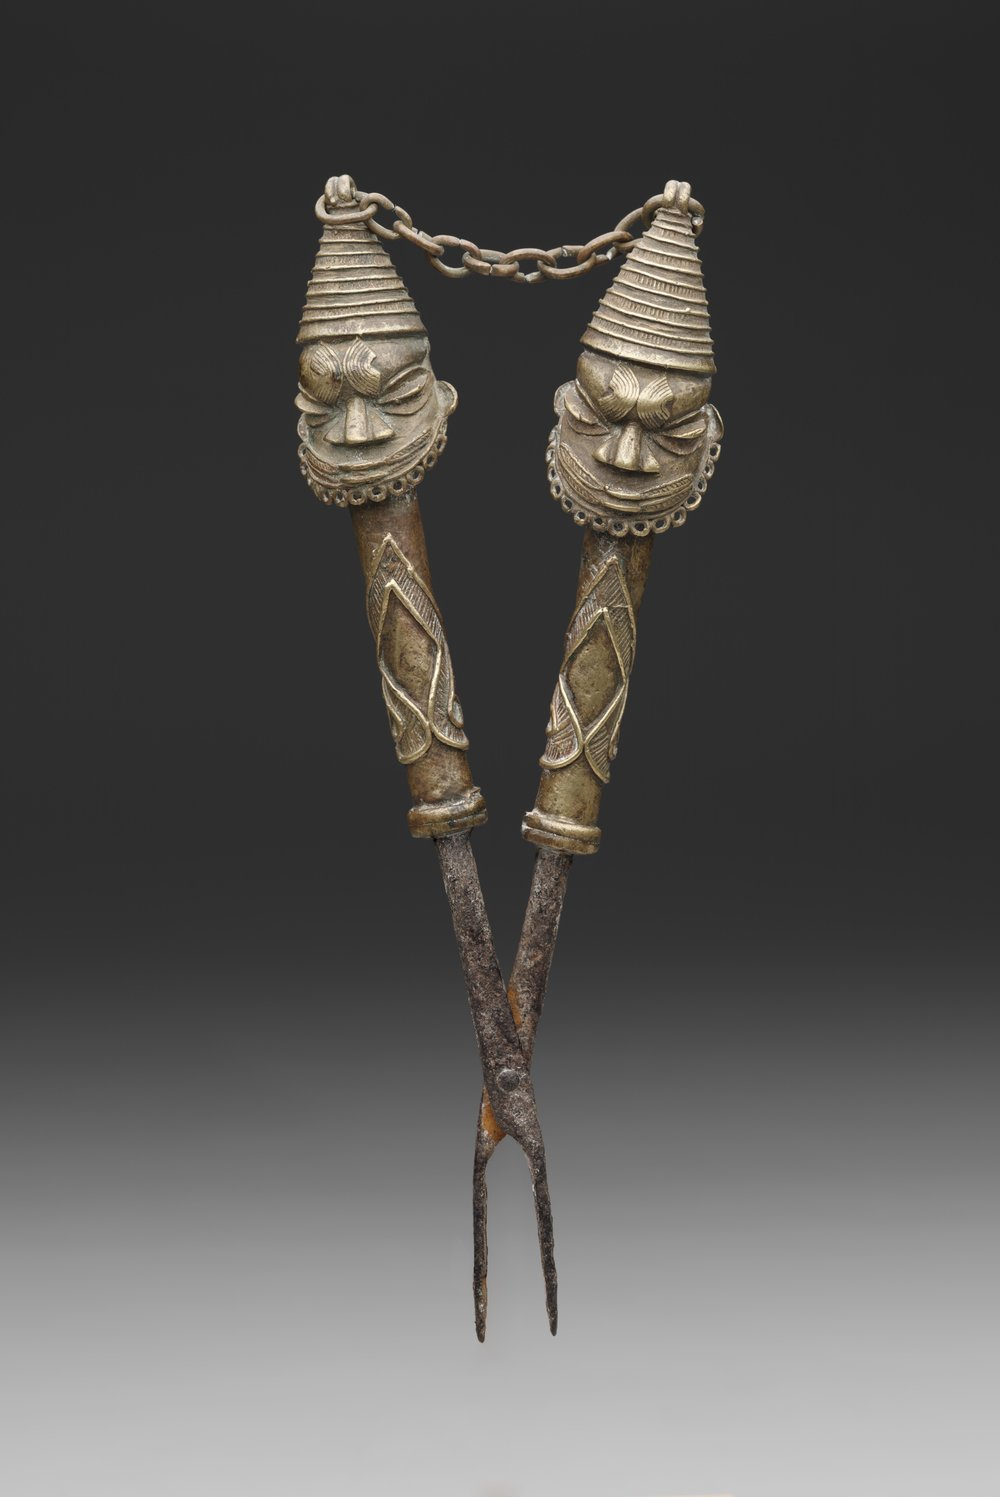 Artist unknown (Yorùbá peoples, Nigeria), figurated tongs for Òṣùgbó Society, early to mid-20th century, iron, copper alloy (cast). Dallas Museum of Art, 2005.92, Gift of George and Sidney Perutz in honor of Roslyn A. Walker